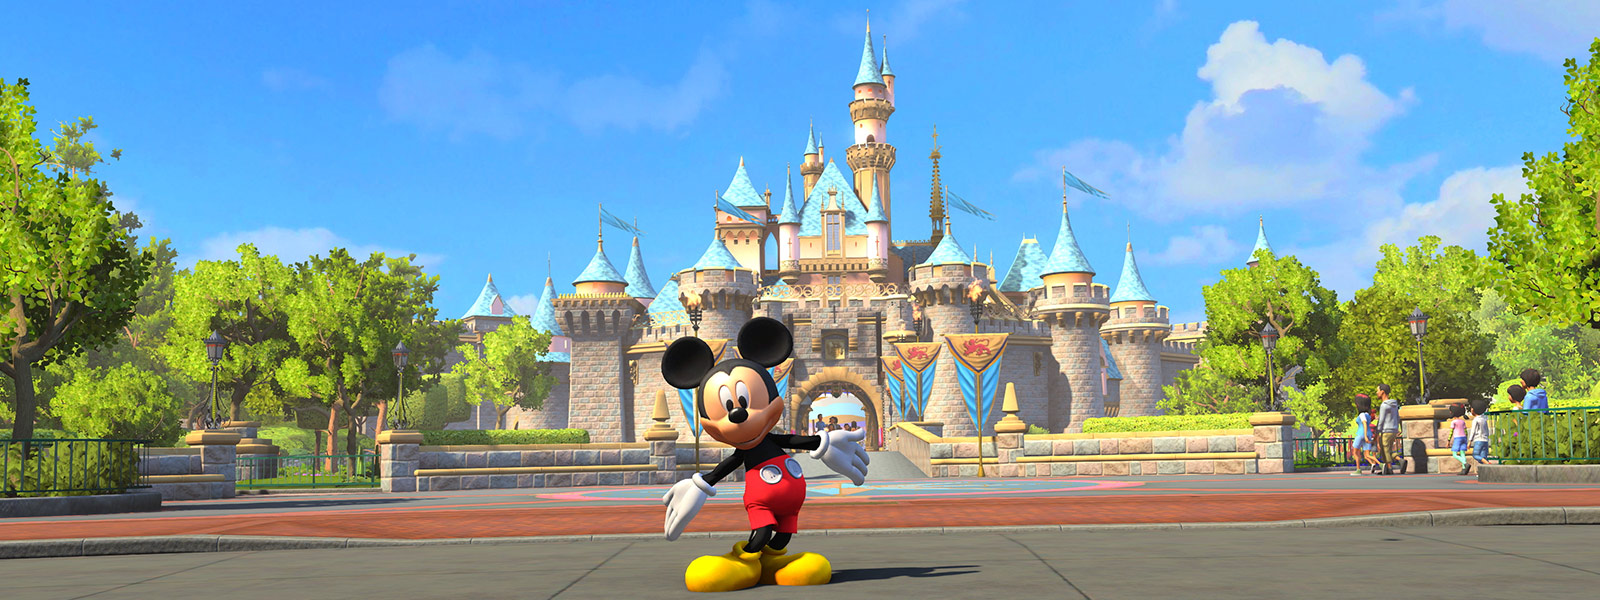 Disneyland Park: Mickey Mouse standing in front of Sleeping Beauty Castle